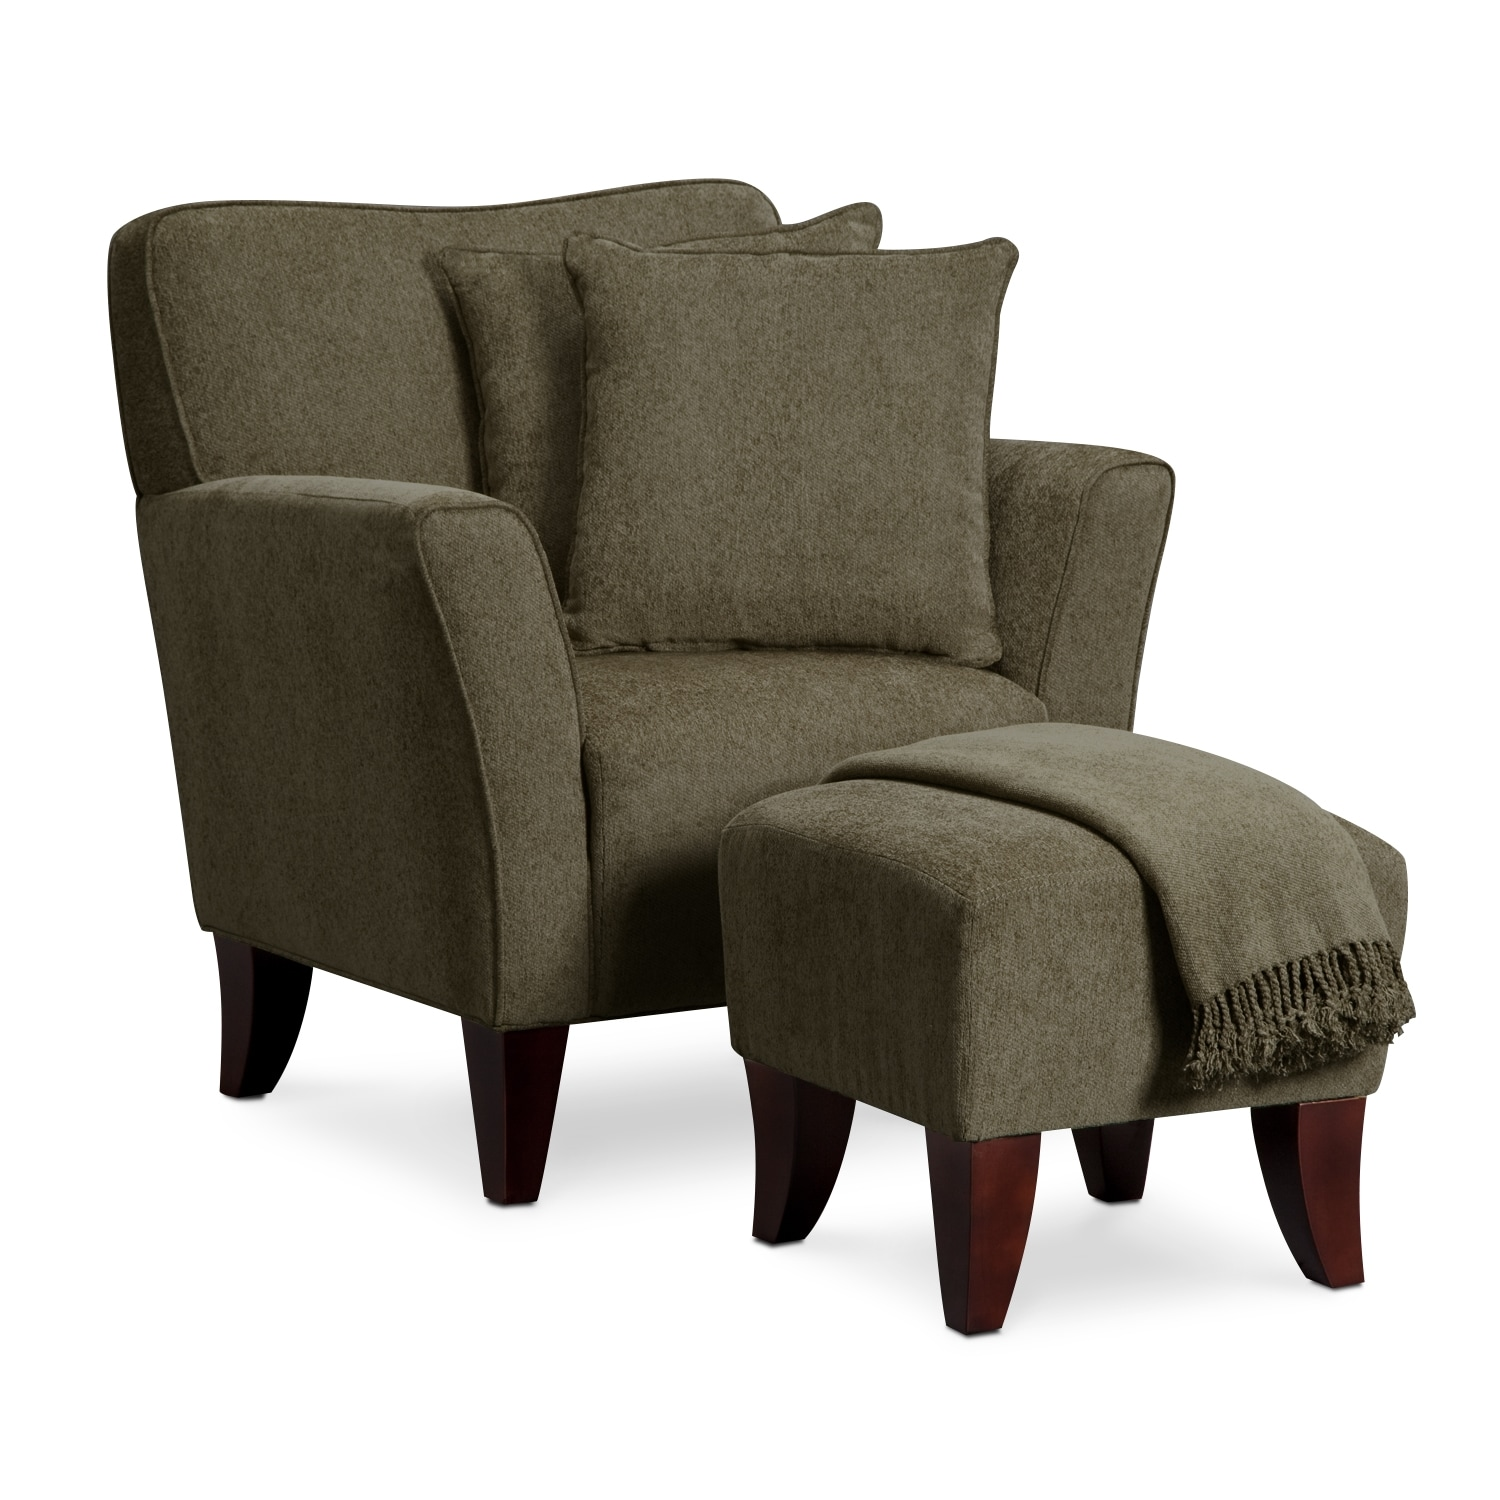 Pillows For Living Room Chairs: Dorset Chair Set W/ Pillows And Throw